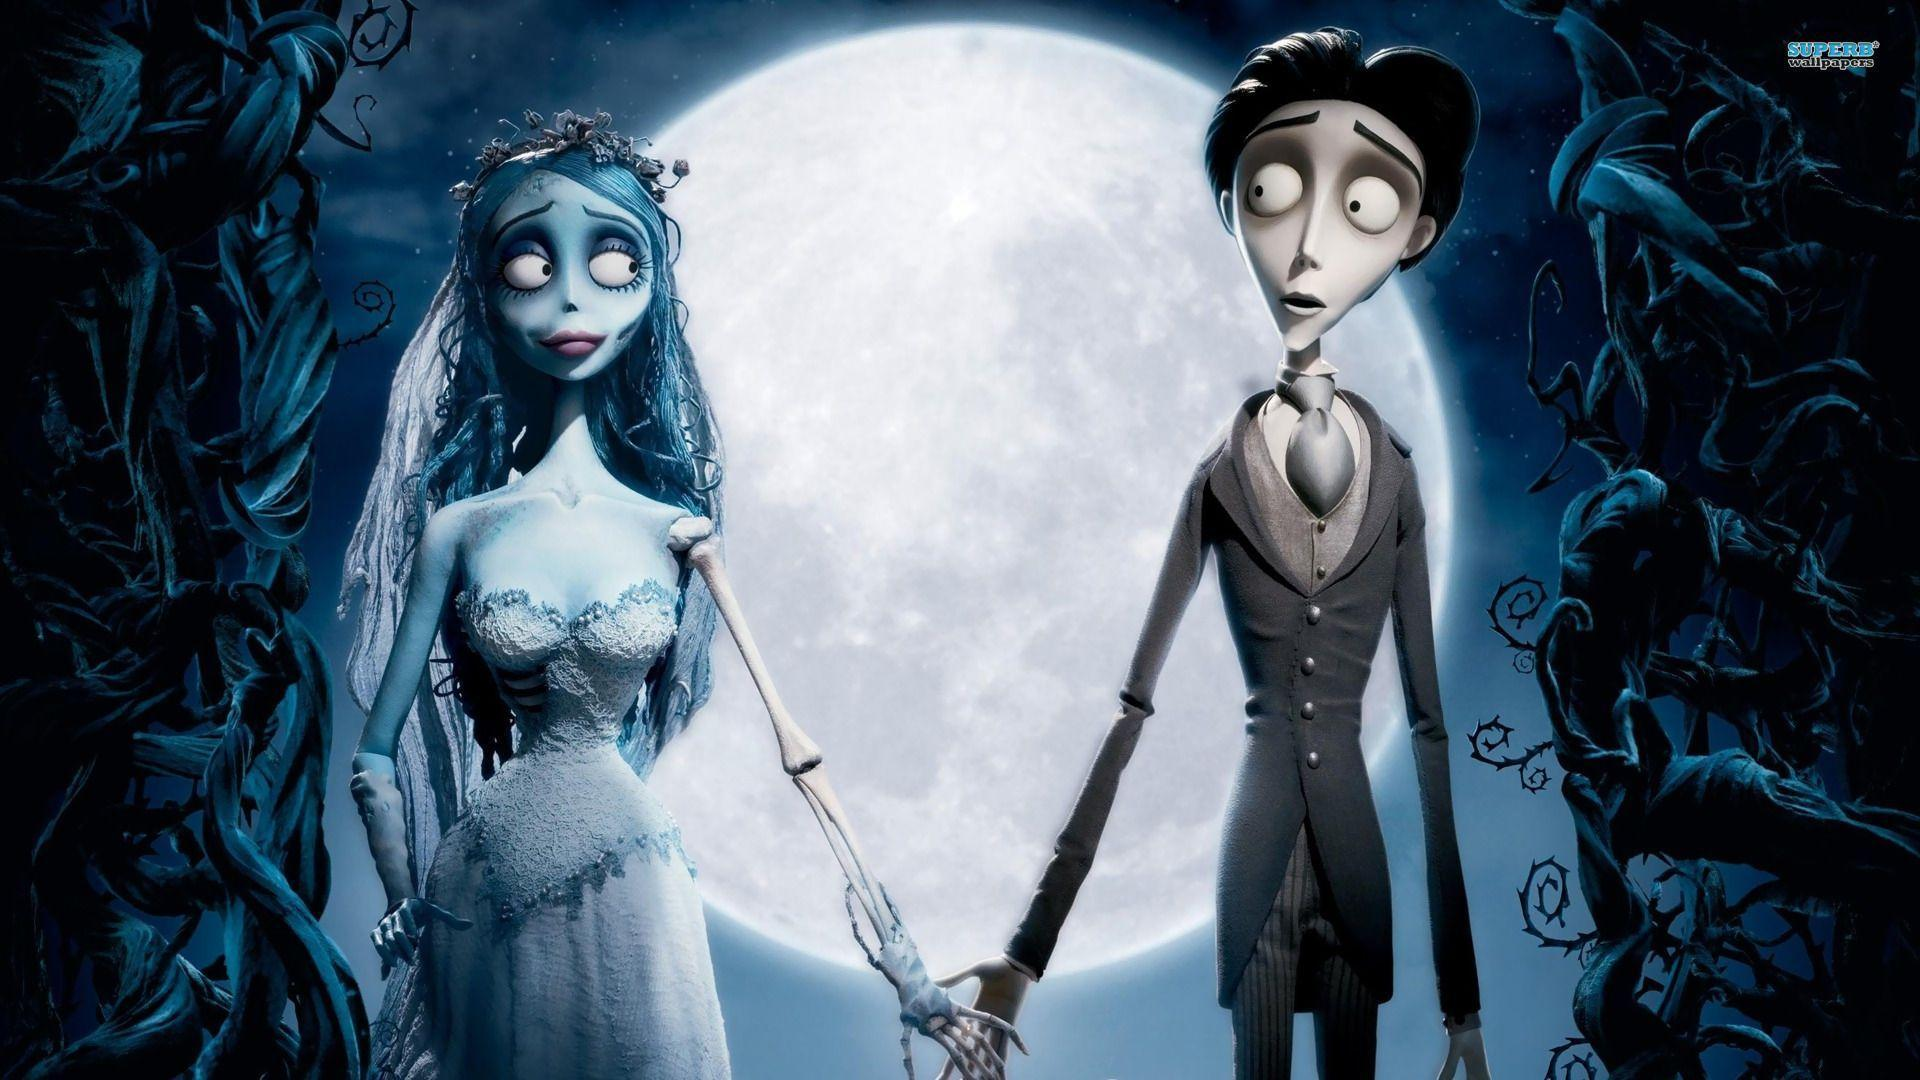 photo: The Corpse Bride Online